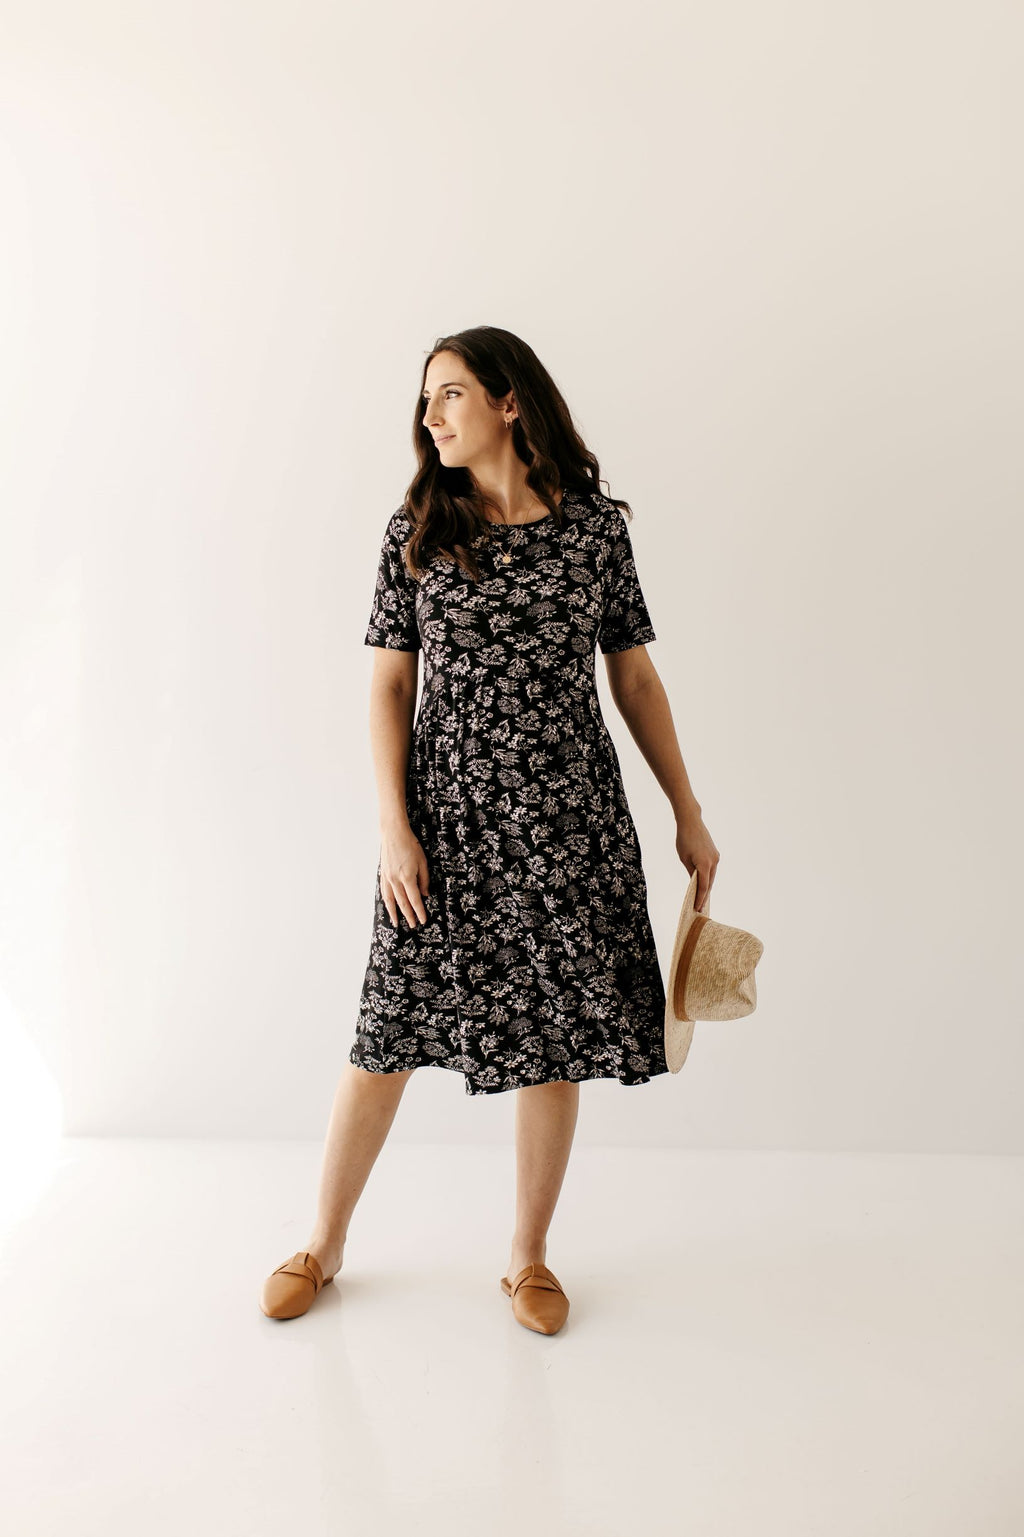 'Myrna' Maternity Dress in Black Floral